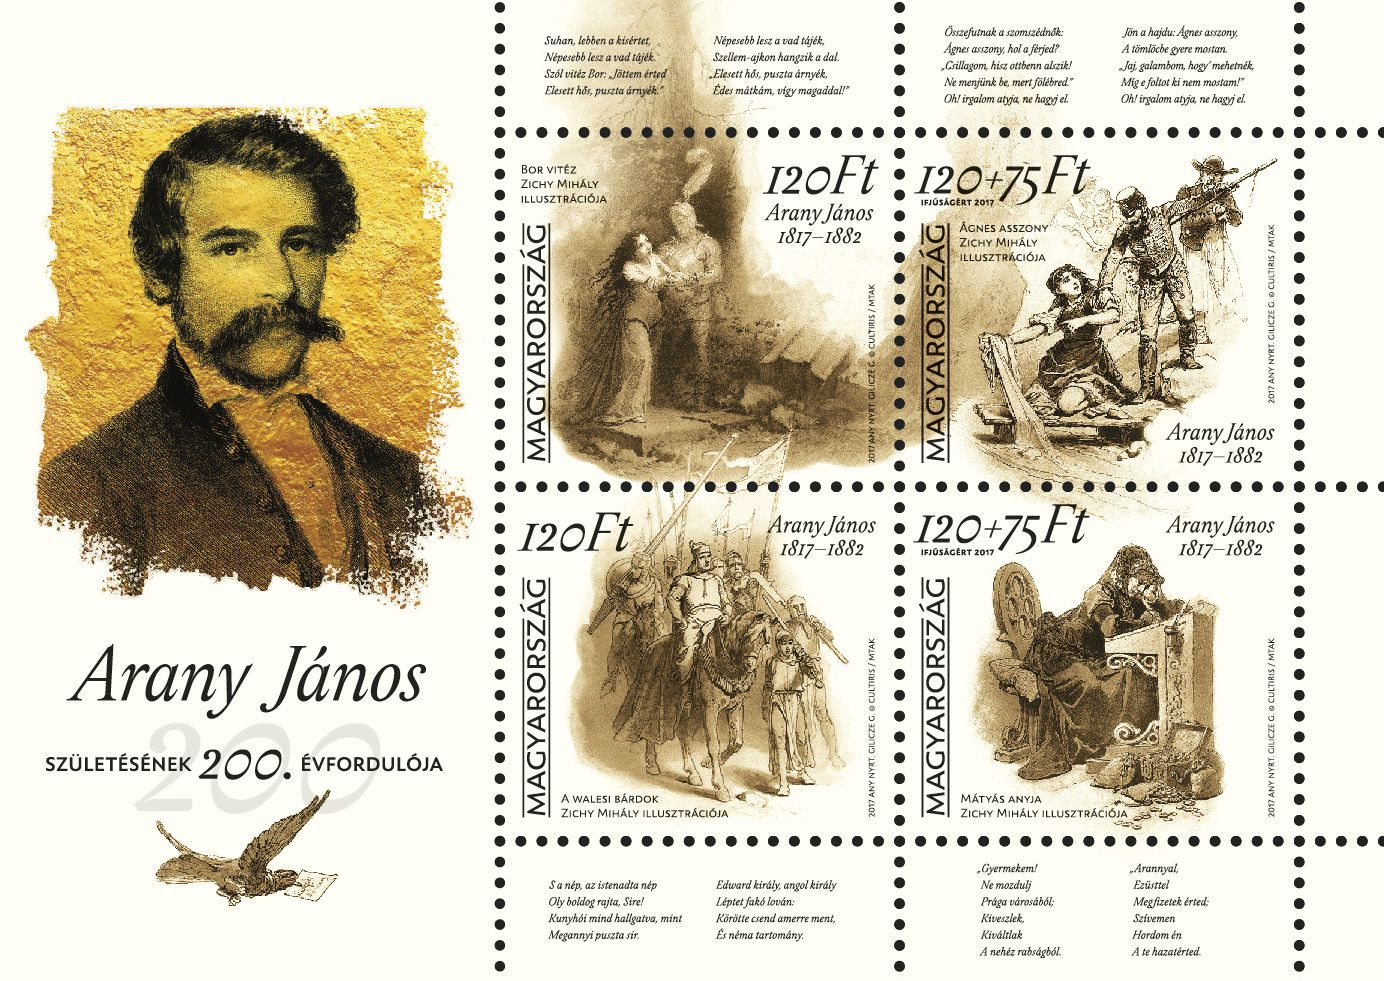 For youth 2017: János Arany was born 200 years ago